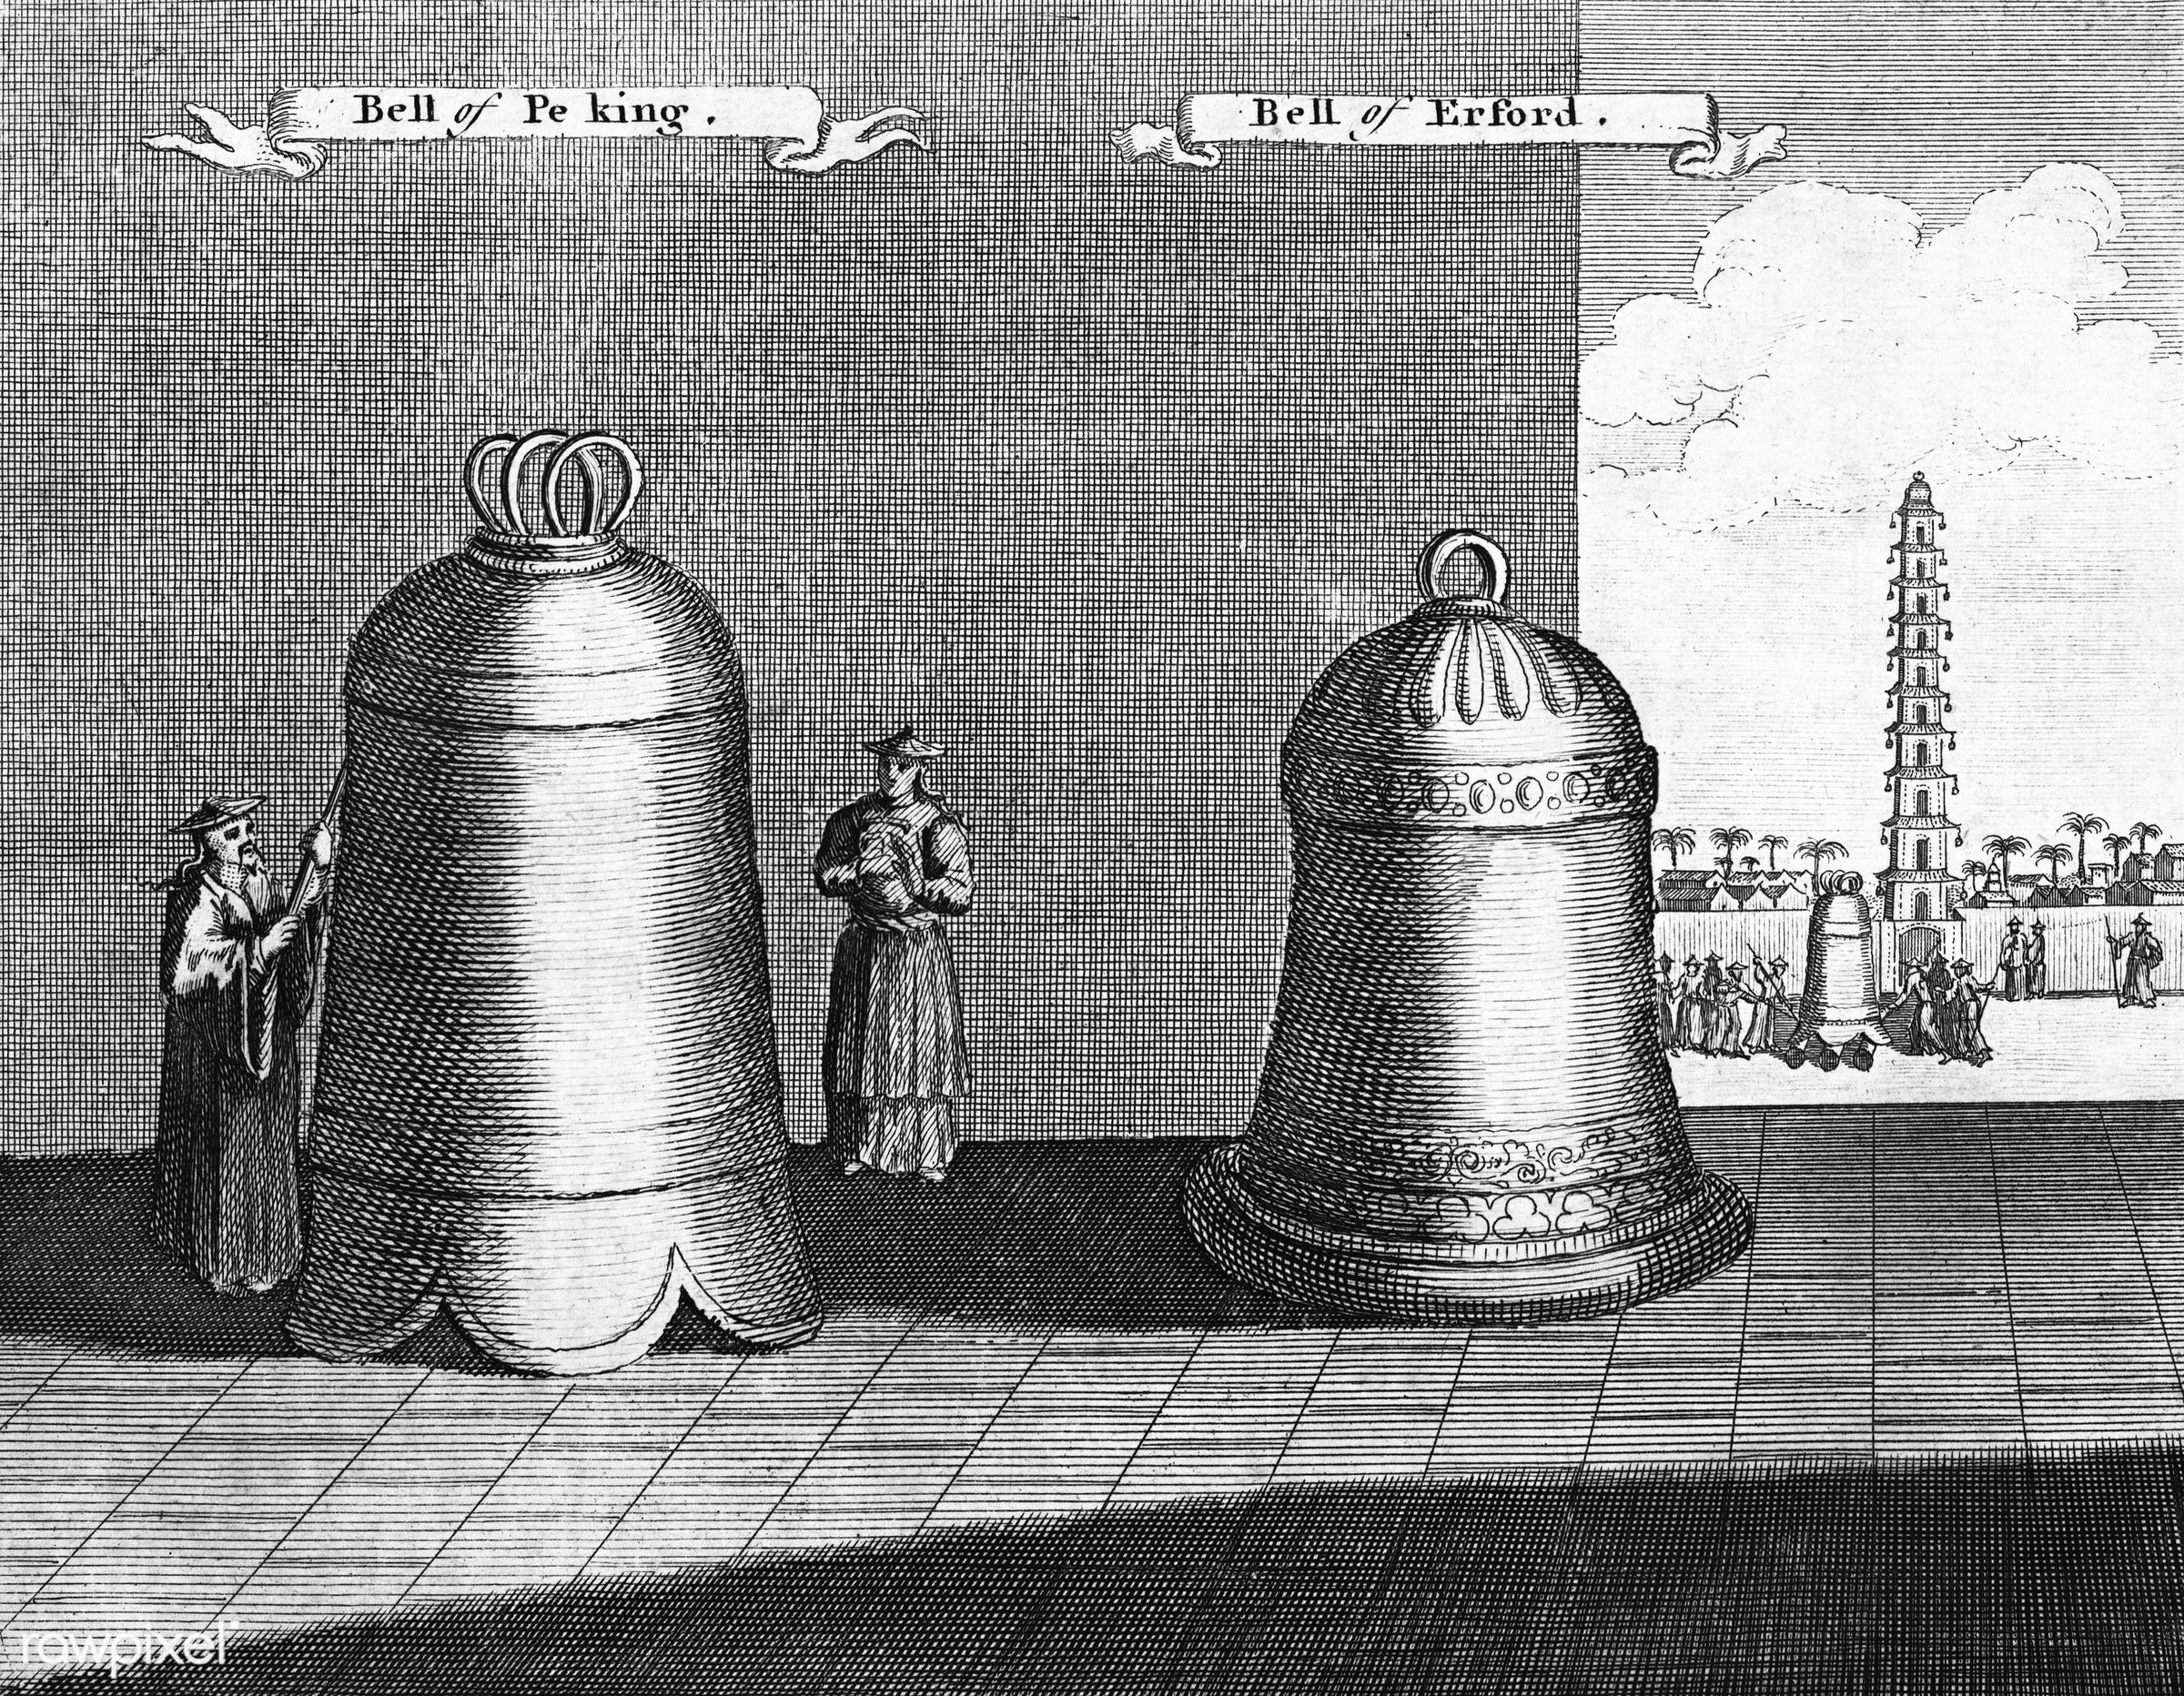 """Vintage illustration of the """"Bell of Pe-king"""" and the """"Bell of Erford"""" published in 1745-1747 by Thomas..."""